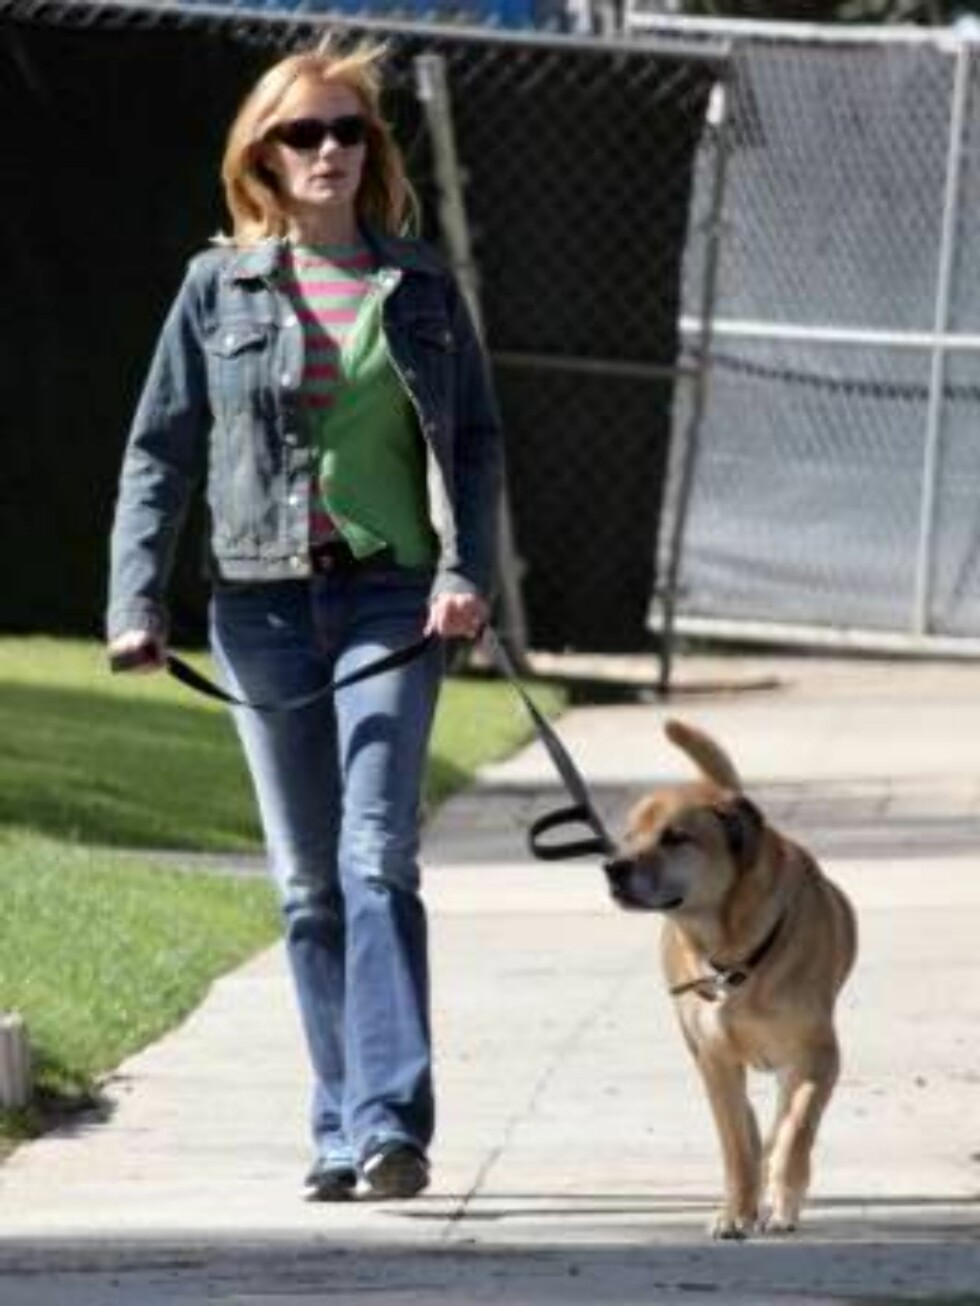 CSI star Marg Helgenberger walking her dog in Santa Monica. March 7, 2006 X17agency EXCLUSIVE / ALL OVER PRESS Foto: All Over Press